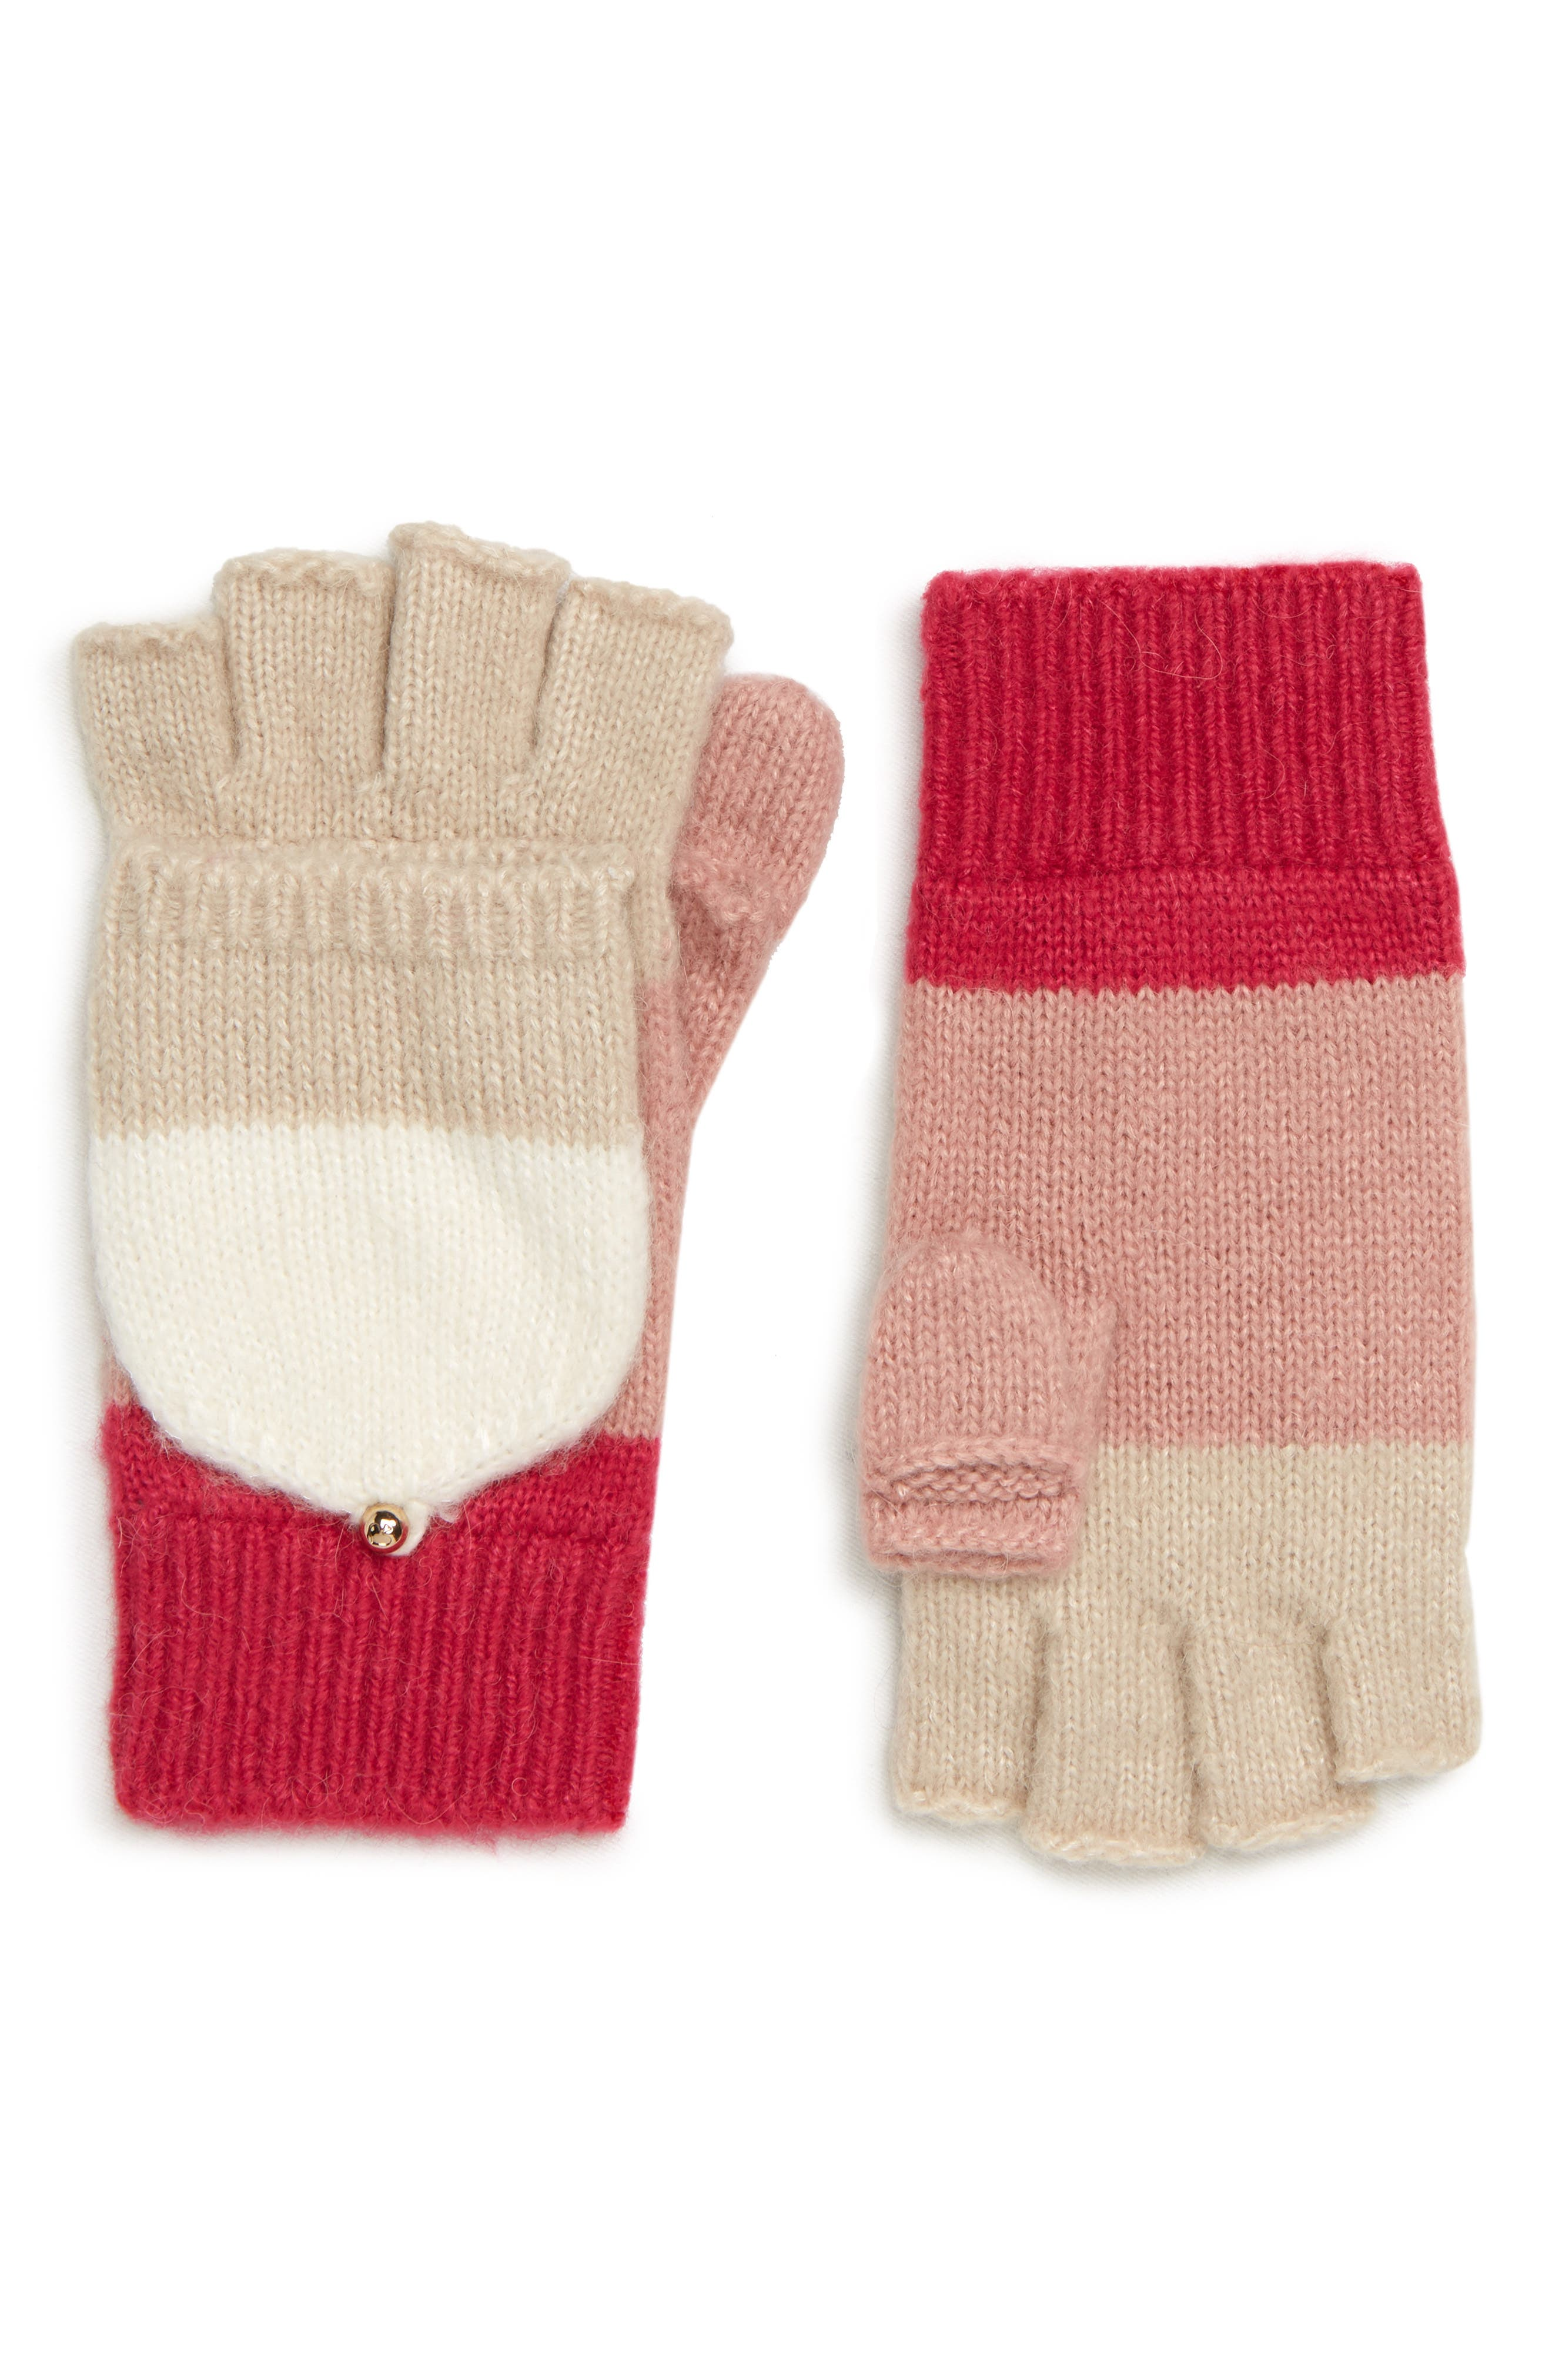 brushed knit colorblock convertible mittens,                             Main thumbnail 1, color,                             CREAM/ OATMEAL/ PEONY/ BEGONIA